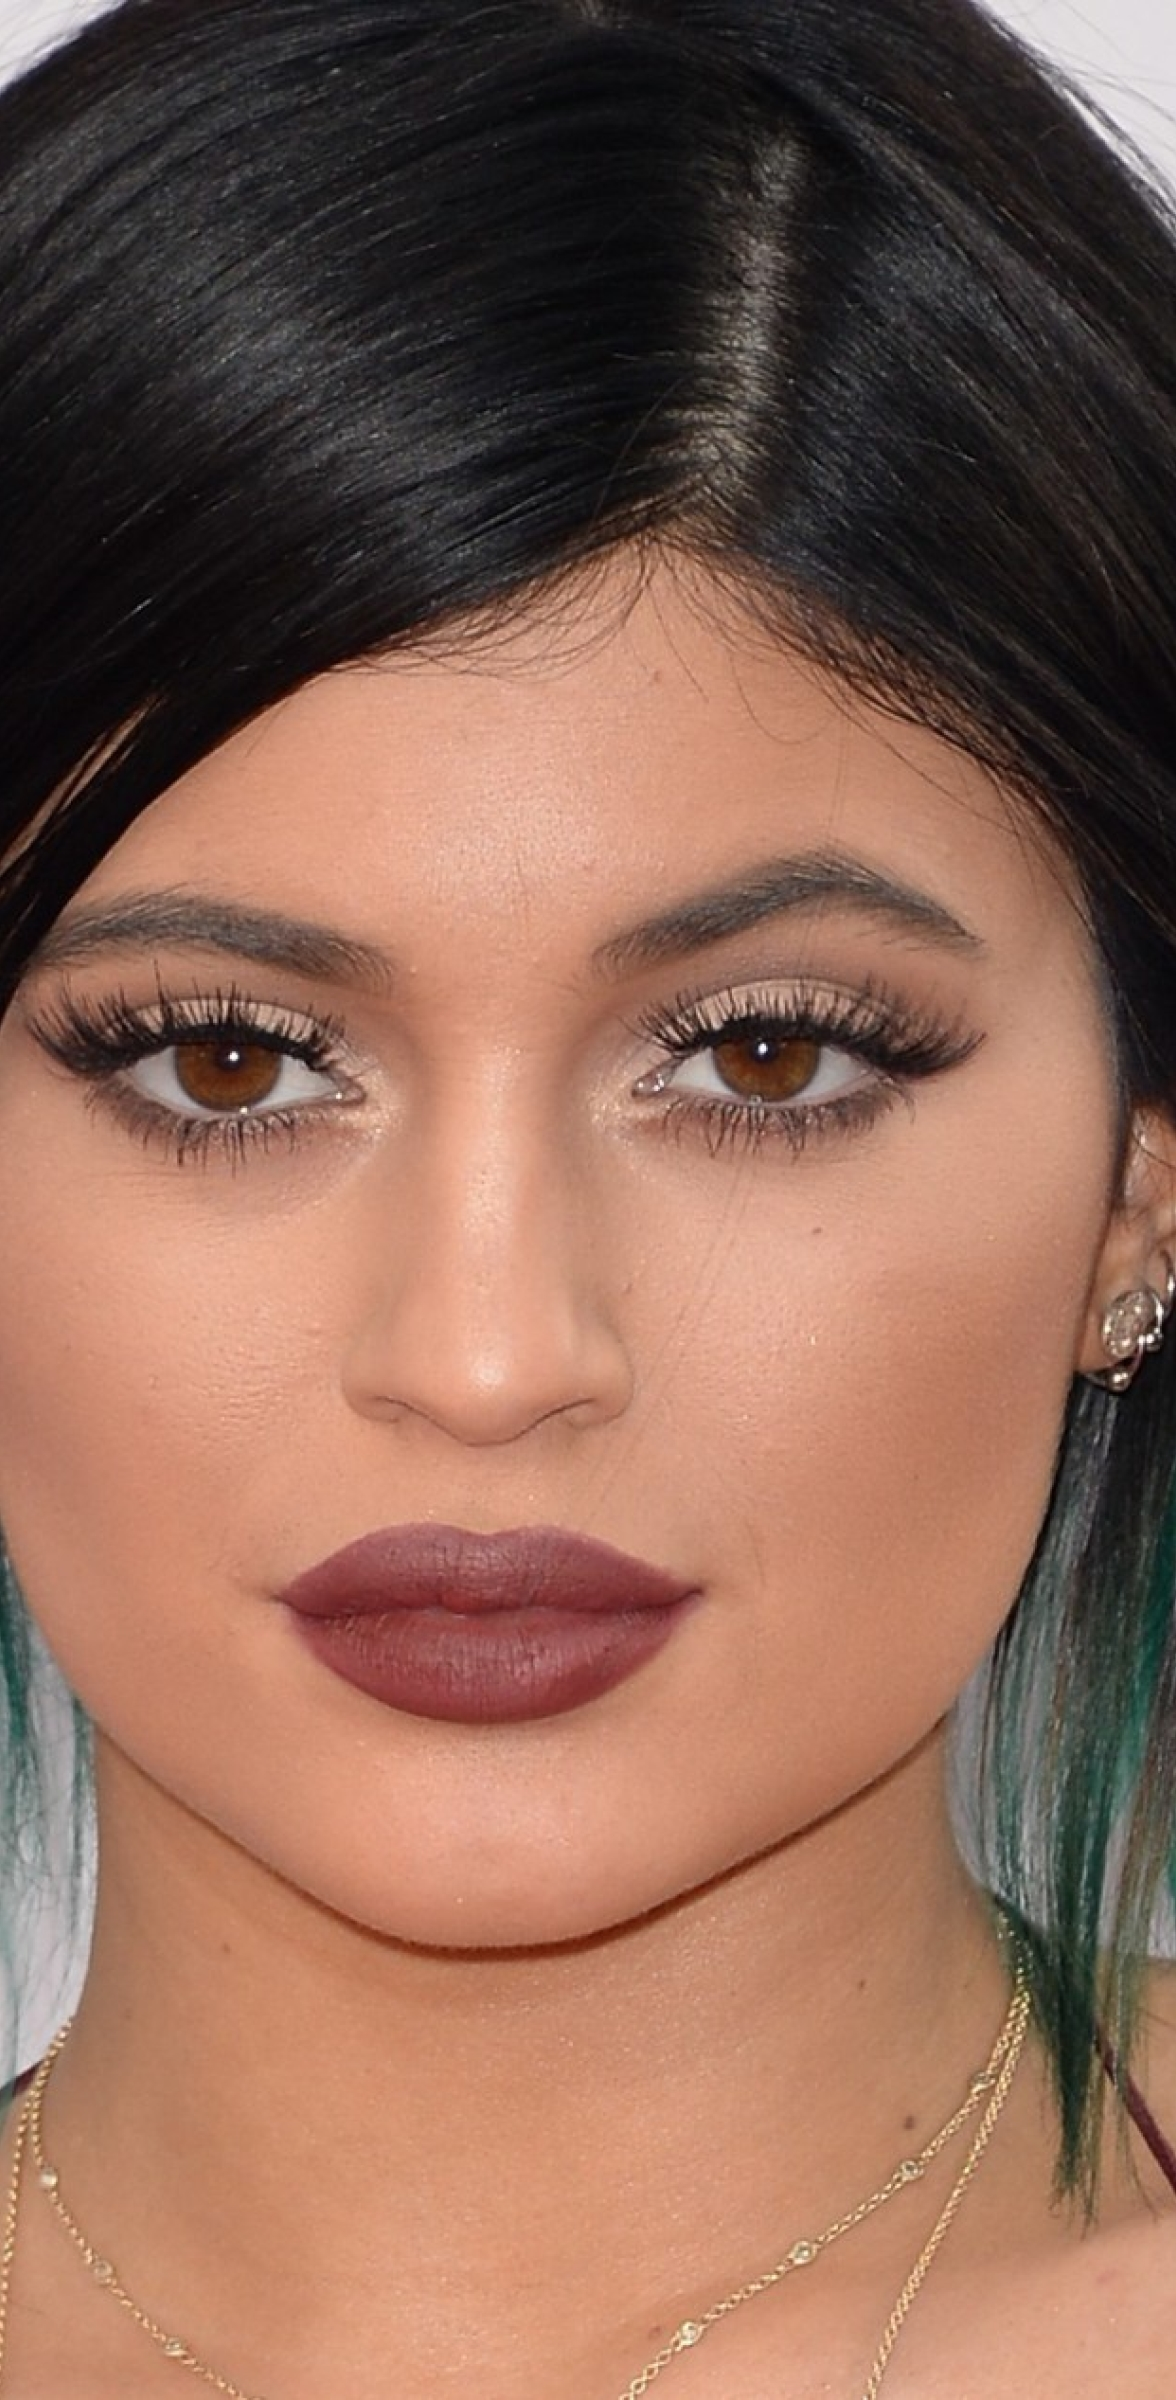 1176x2400 Kylie Jenner 2015 Lip Makeup 1176x2400 Resolution